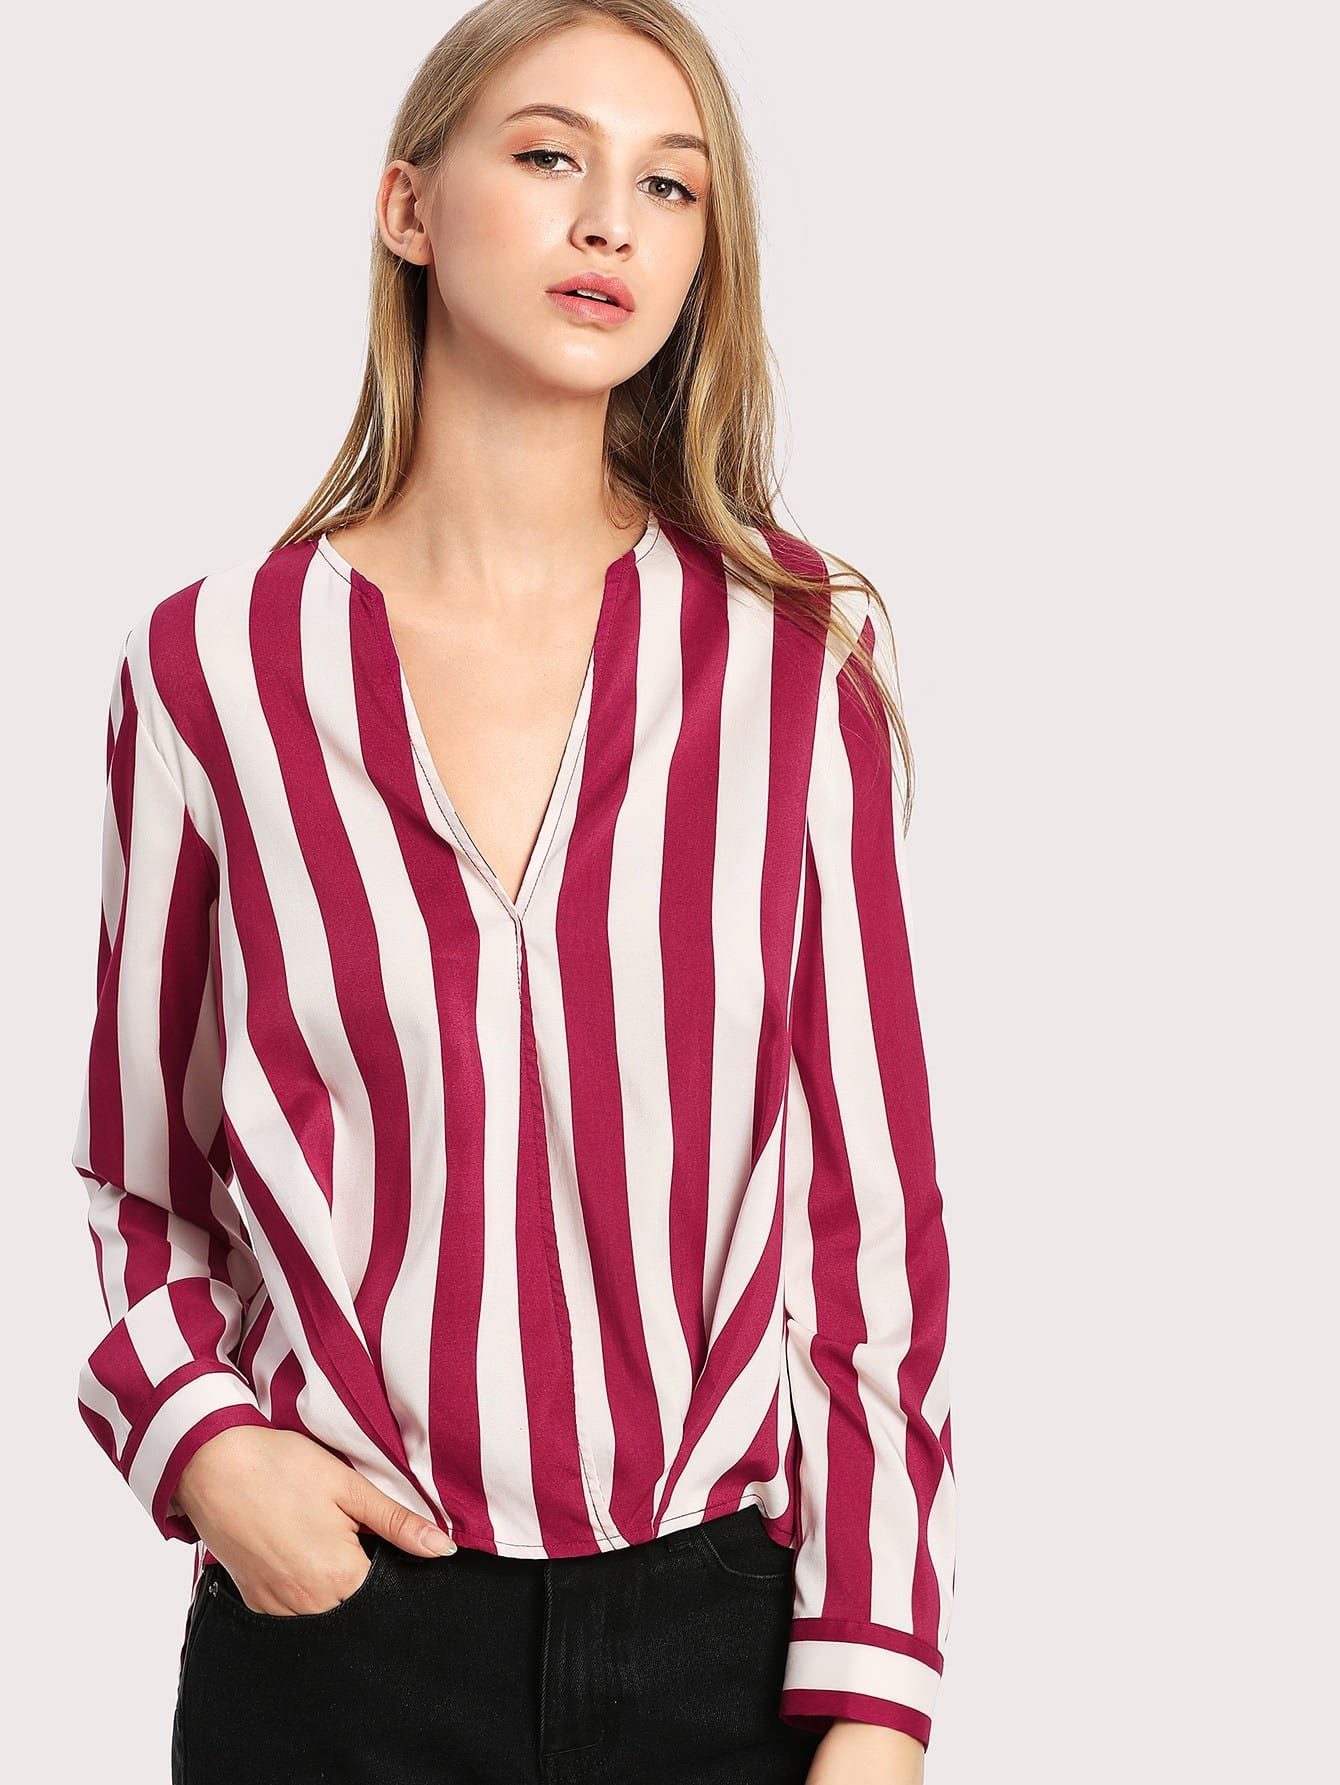 Striped Curved Dip Hem Blouse русские писатели поэты советский период биобиблиографический указатель том 27 н ушаков я хелемский